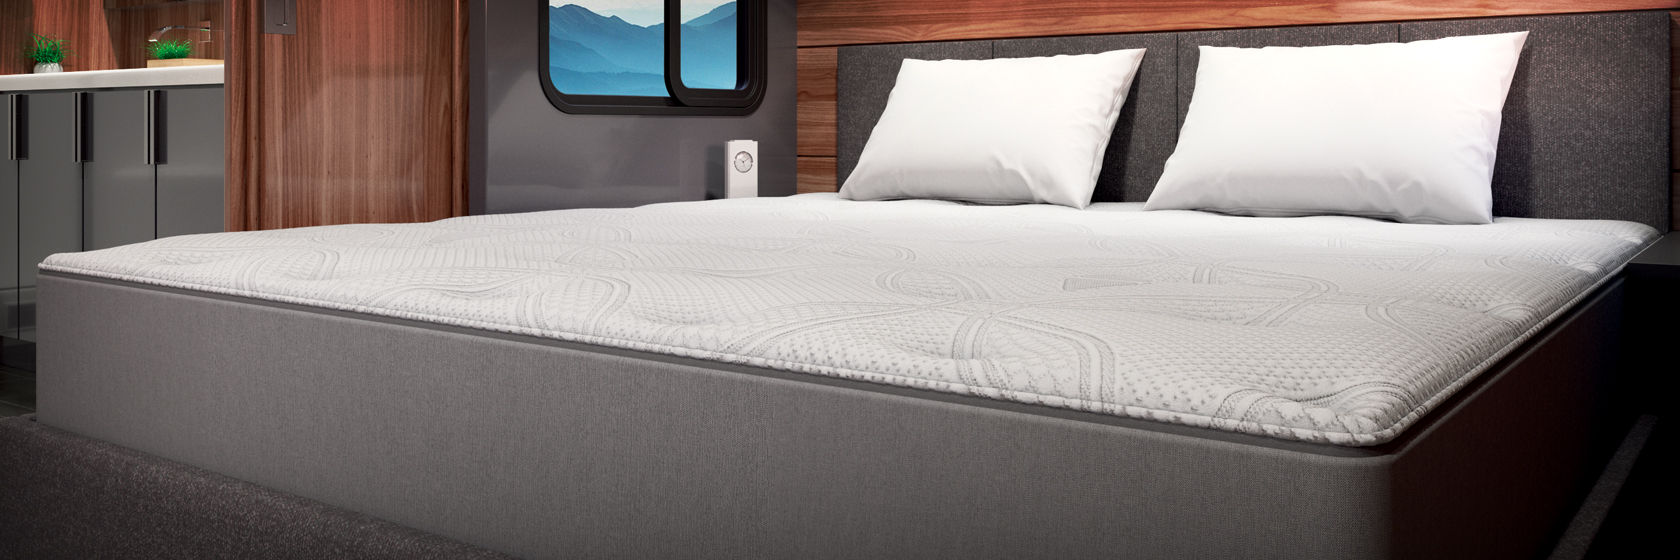 A Better Night's Sleep. Save up to $300 on Mattresses & Toppers